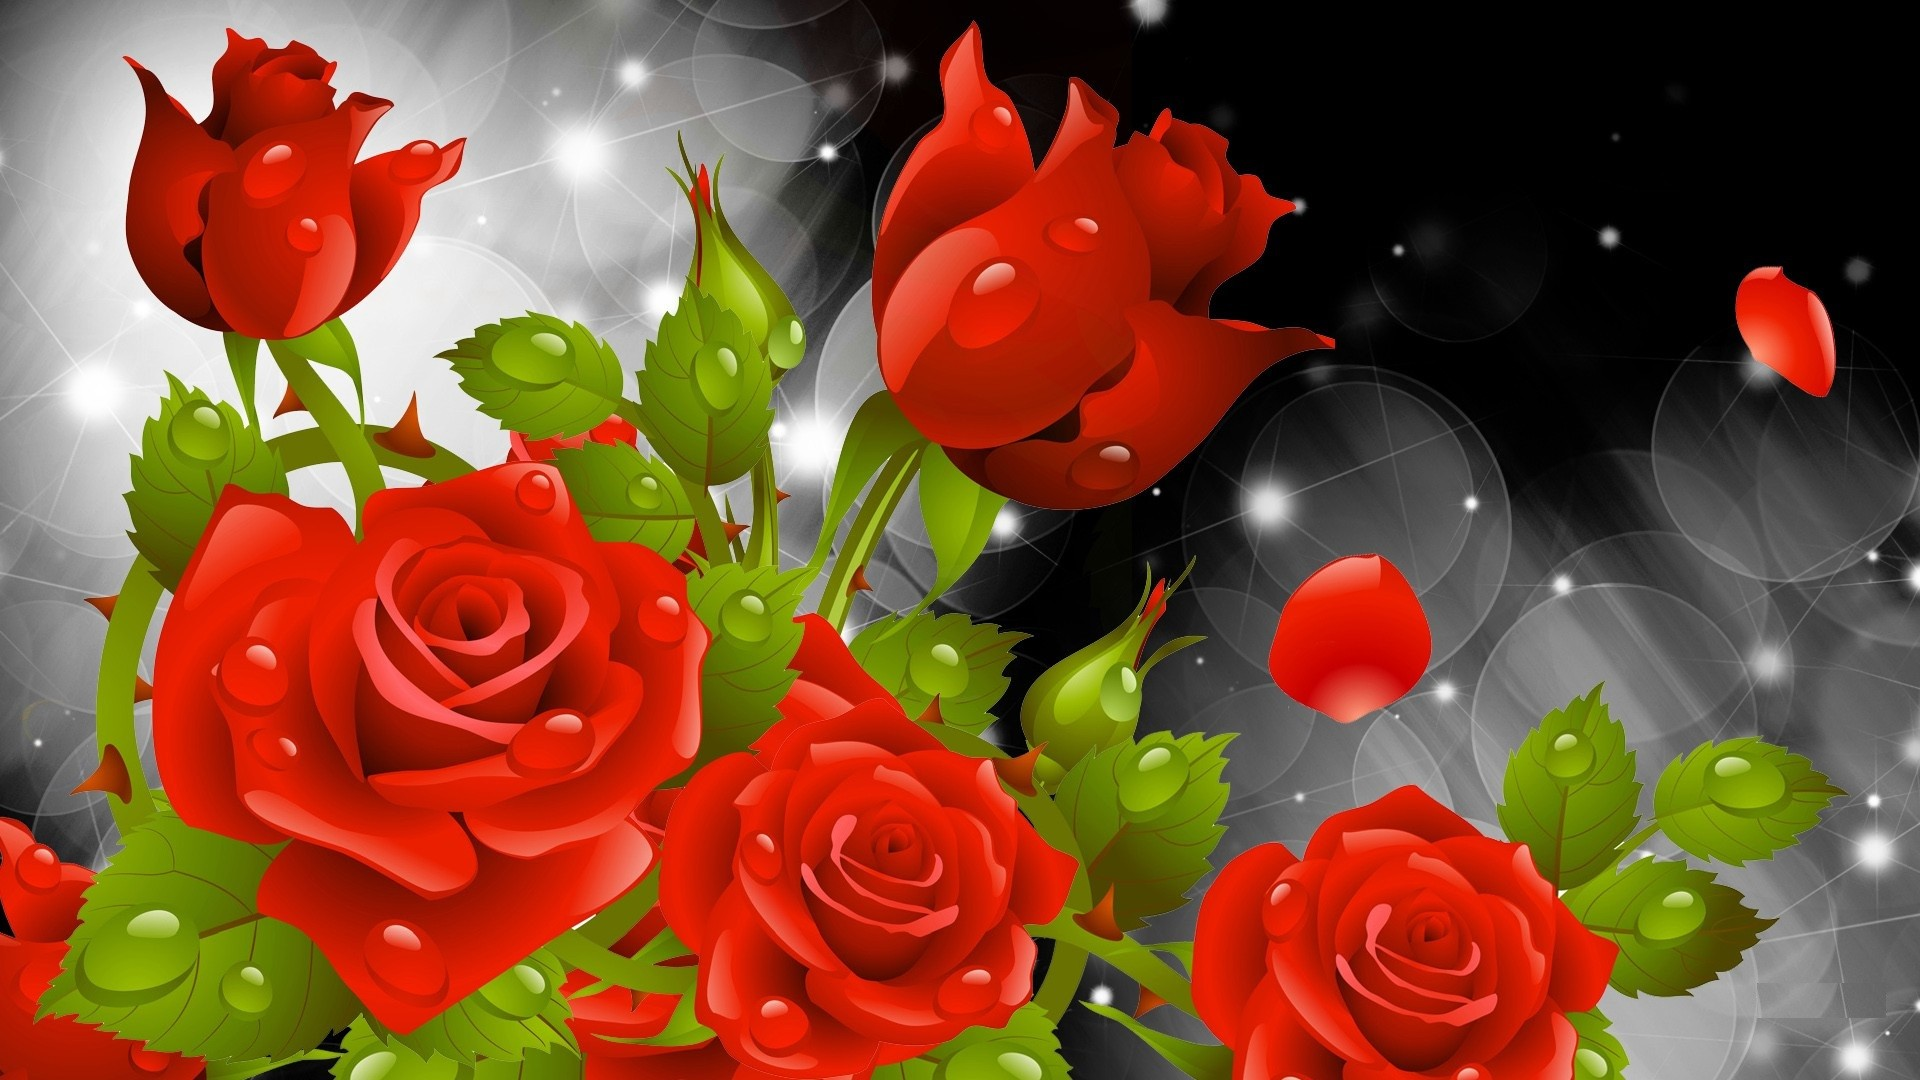 Red flowers wallpapers 69 pictures 2560x1600 beautiful red flowers wallpapers pictures 5 hd wallpapers hdimges izmirmasajfo